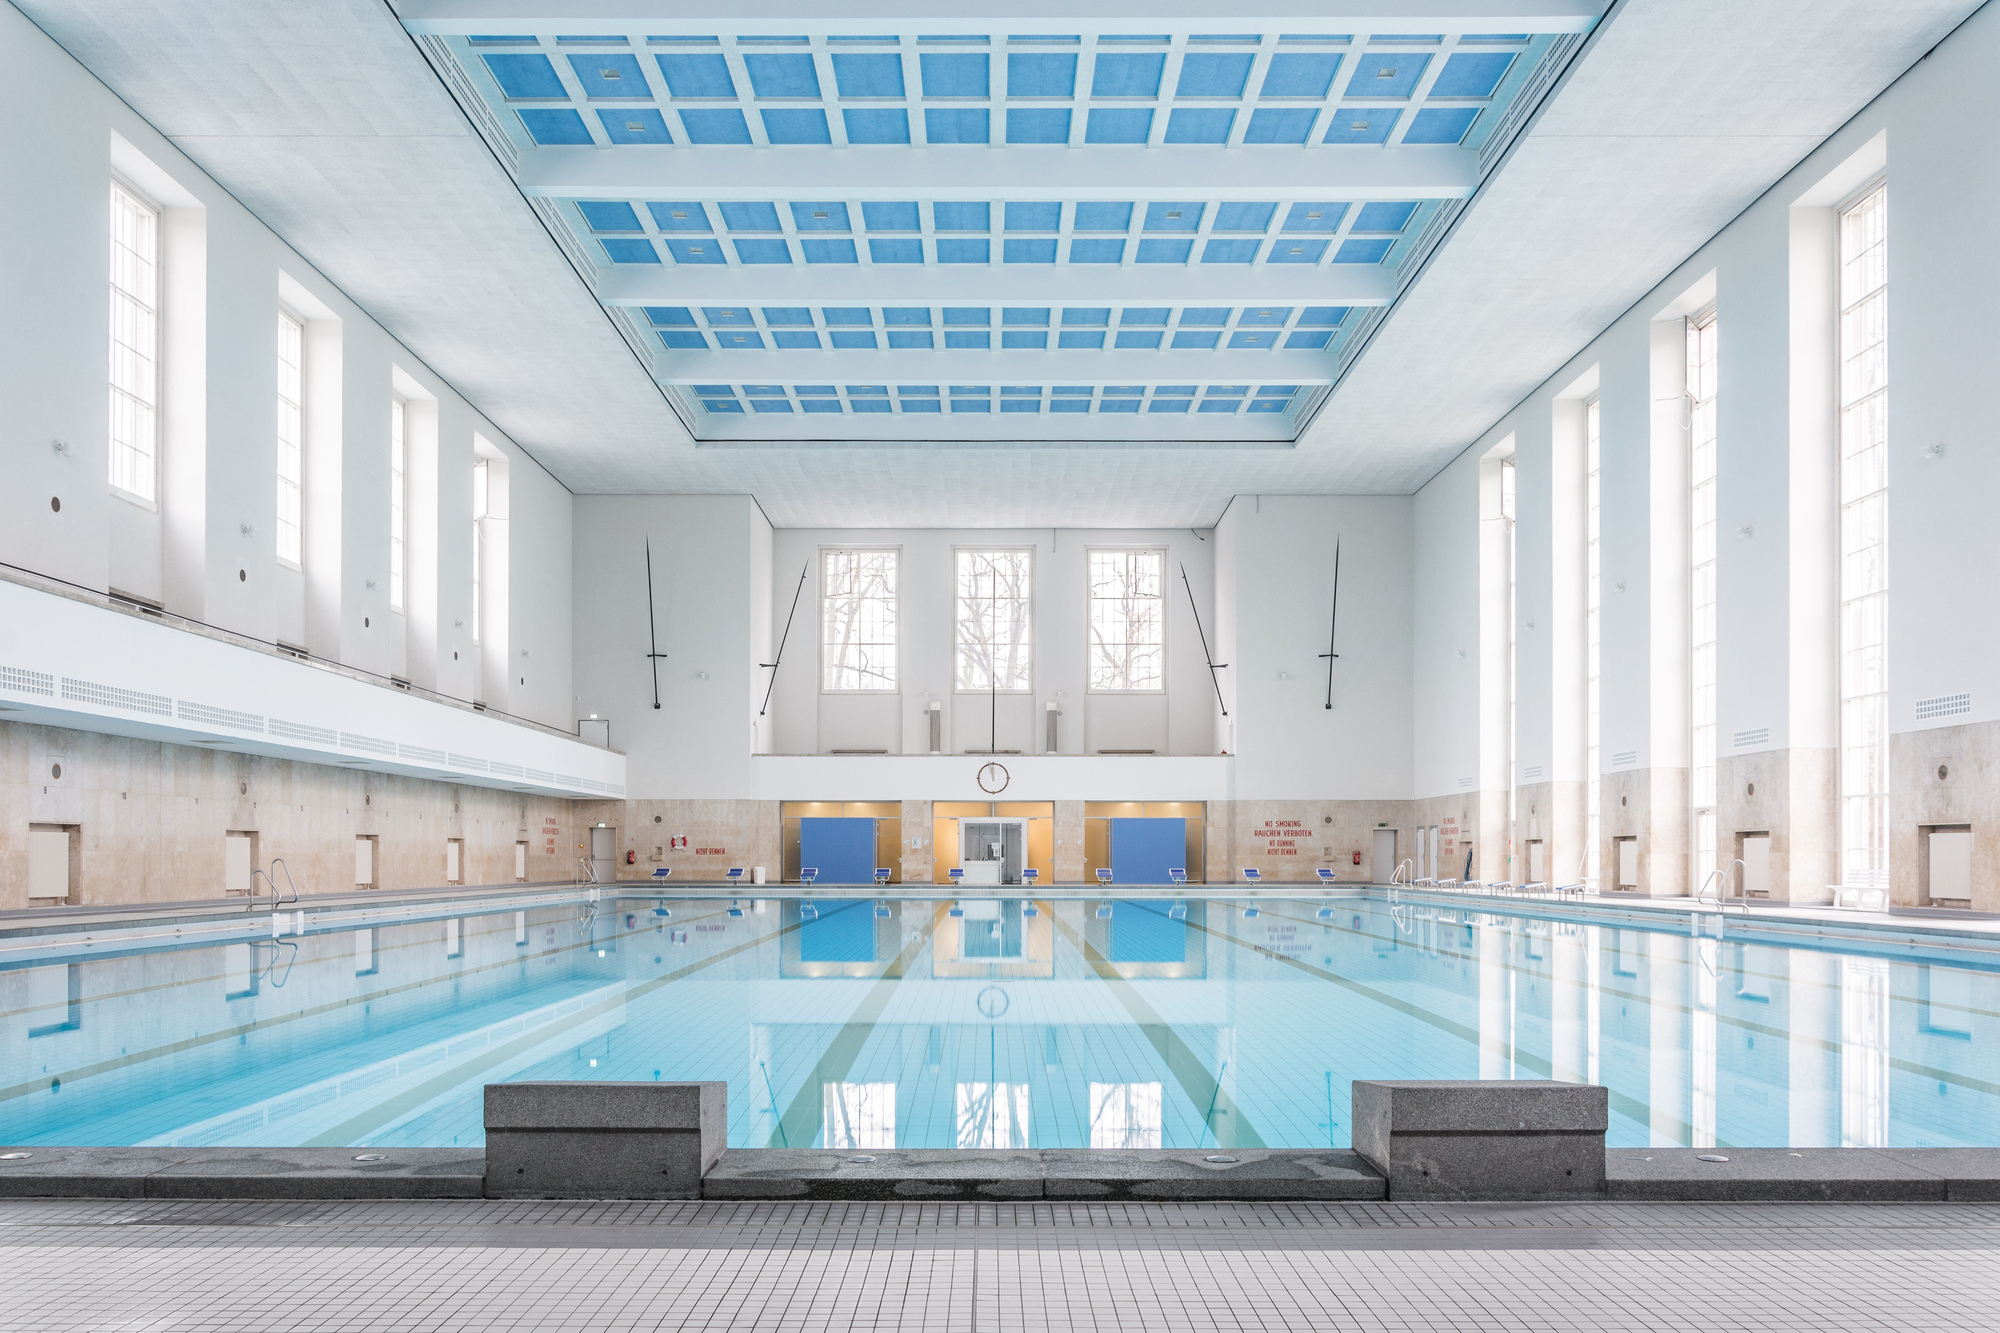 Gallery of swimming hall finckensteinallee veauthier Meyer architecture